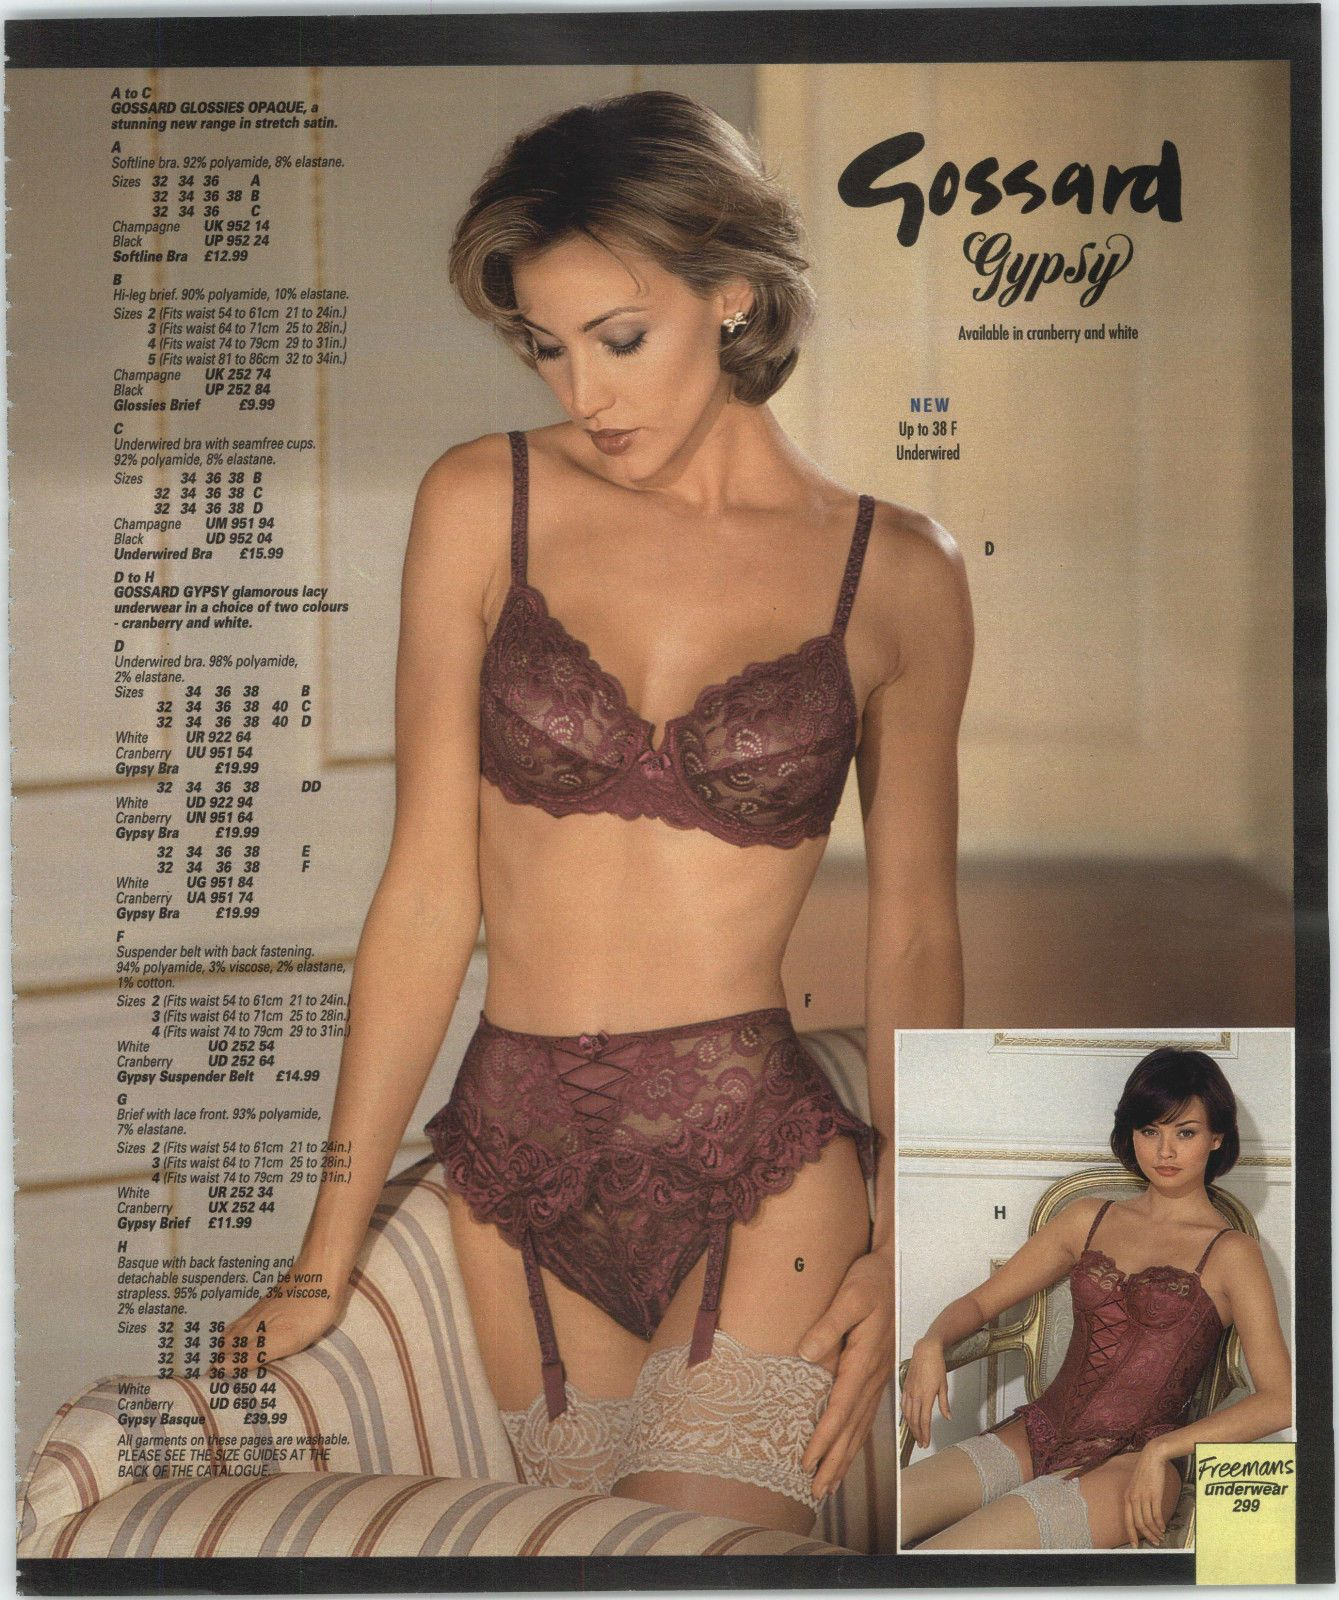 7882c725311fc Purple Lingerie, Retro Lingerie, Lingerie Catalog, Online Fashion  Magazines, Bra And Panty